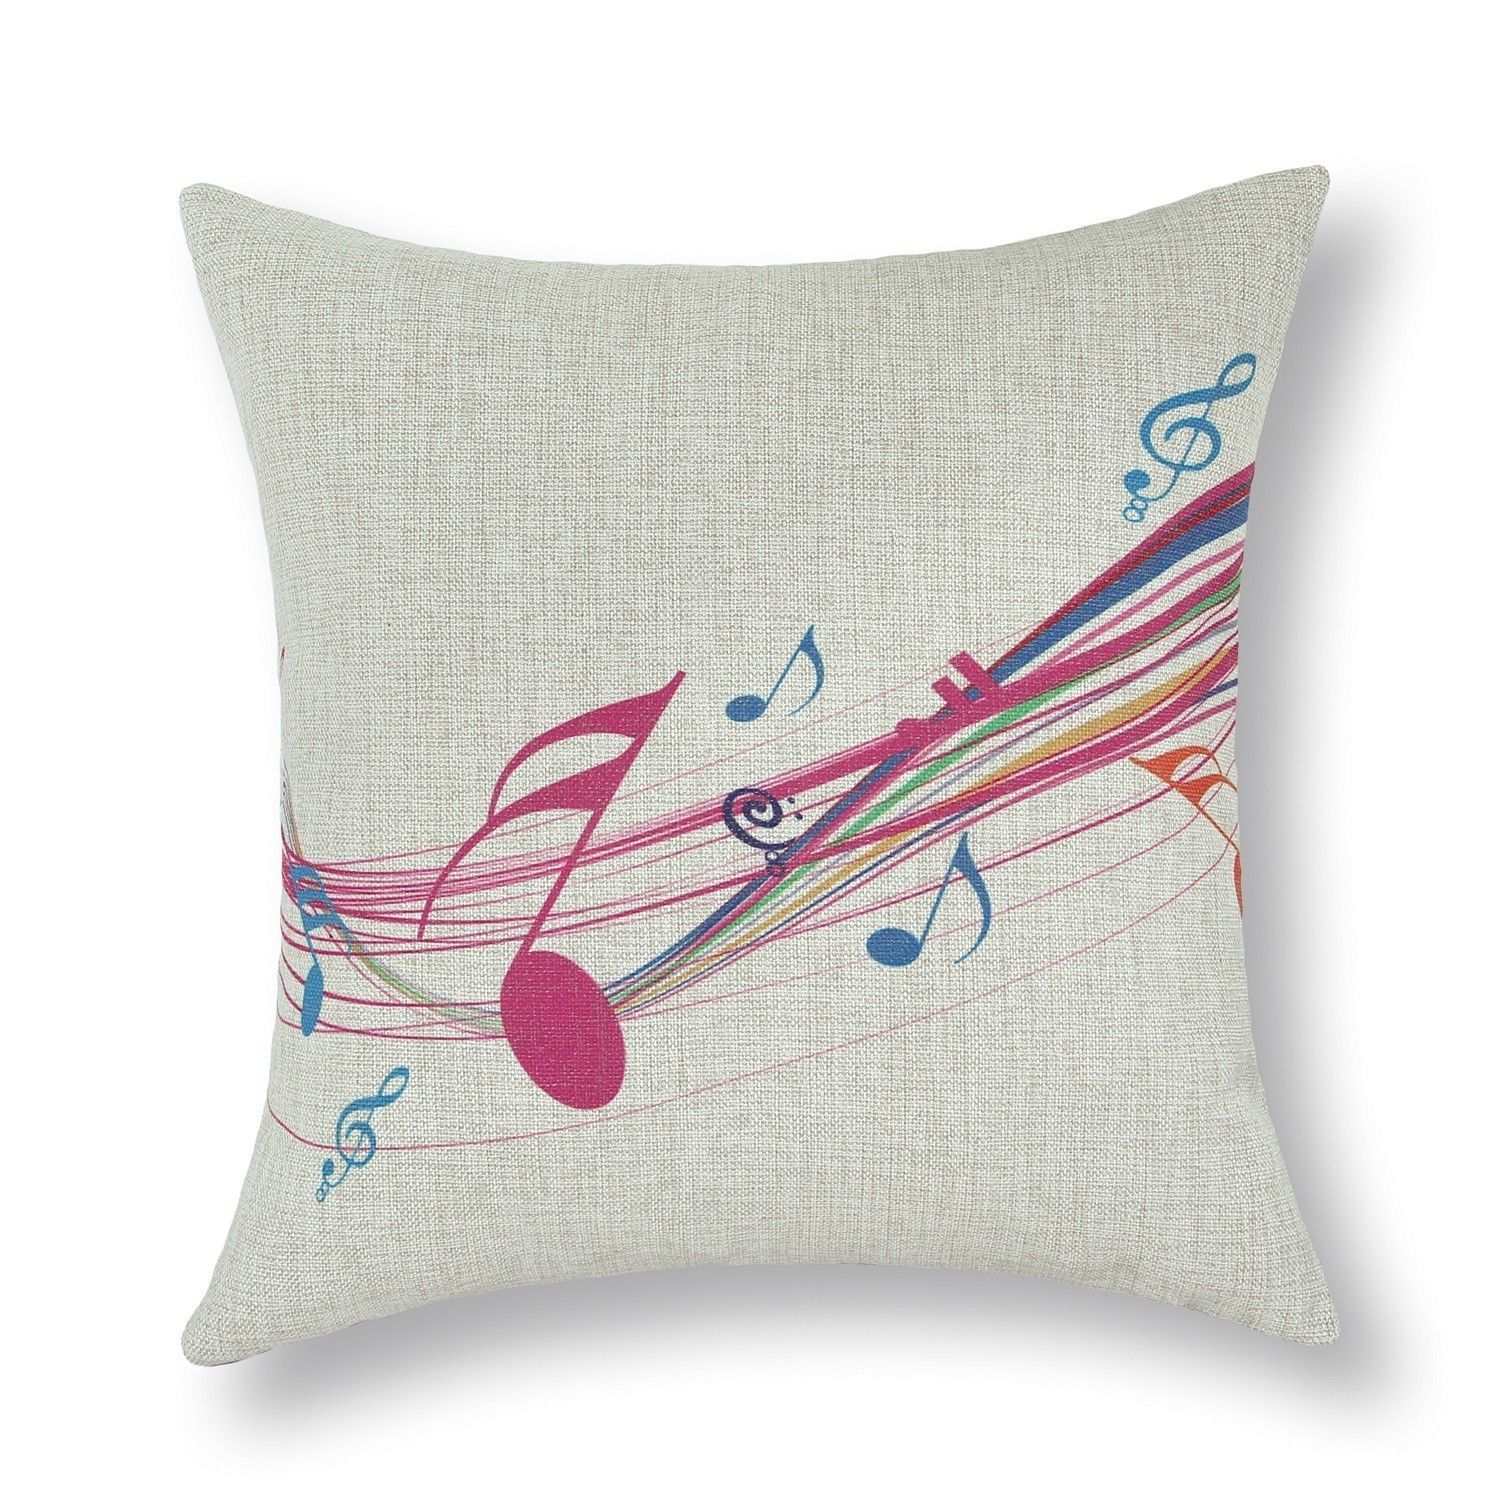 Euphoria Cushion Cover Pillows Shell Music Theme Note Piano Keyboard